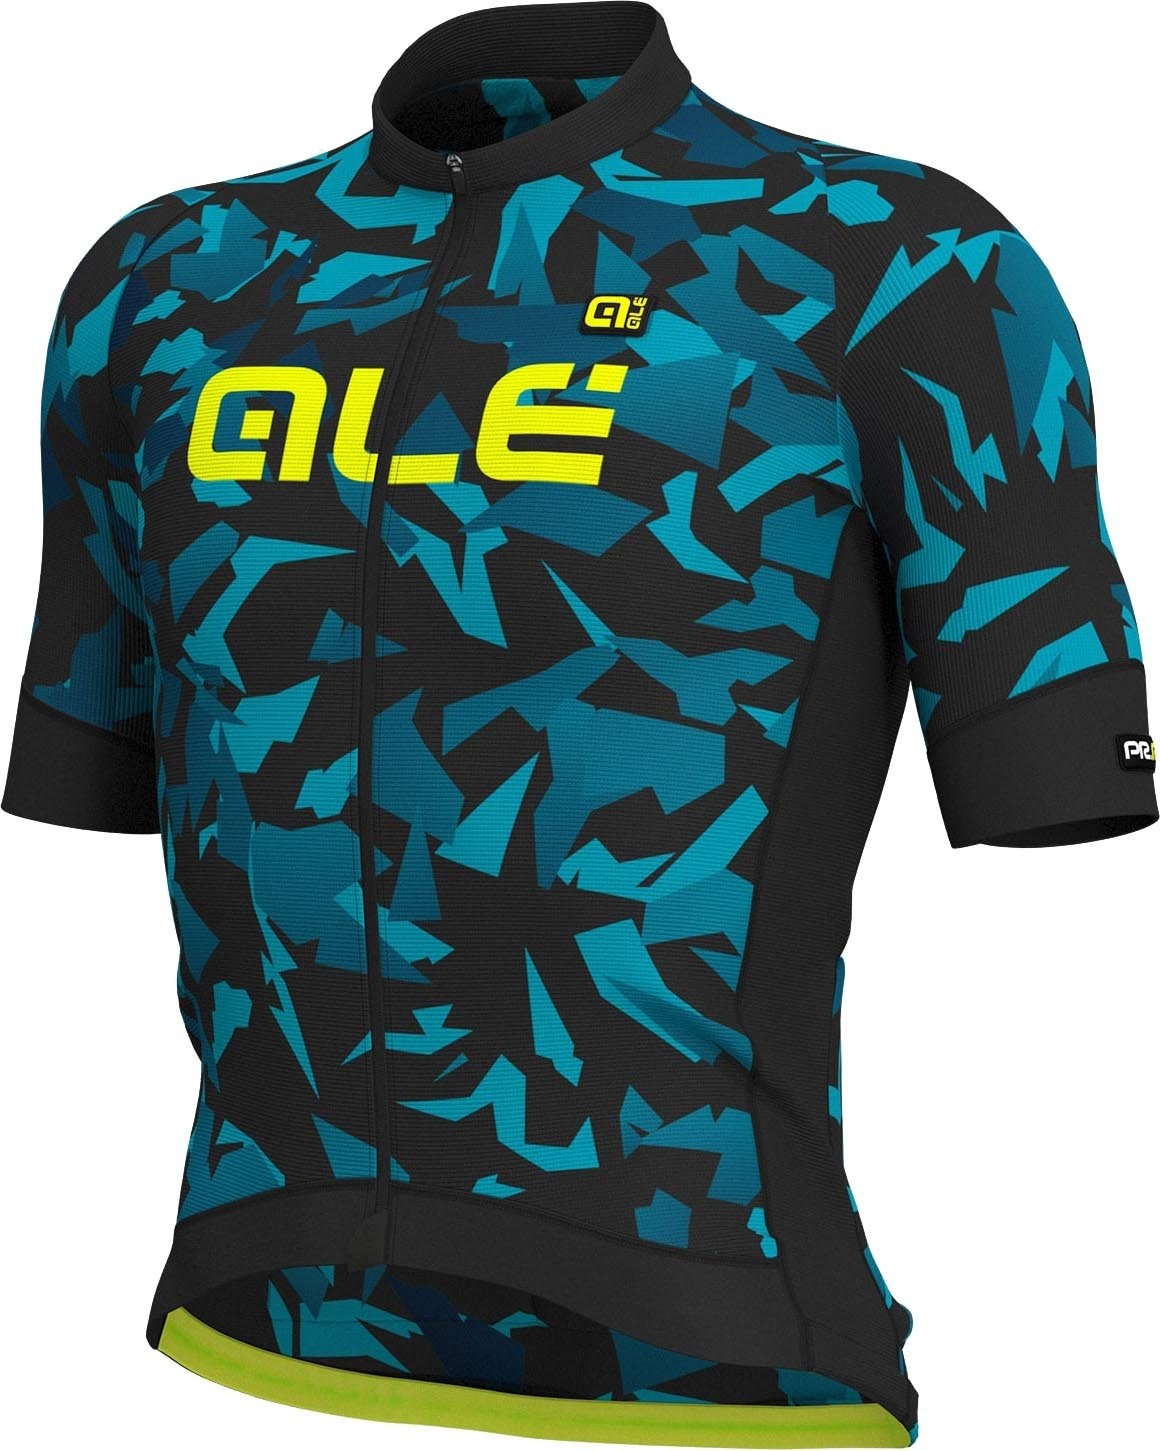 Alé Jersey Graphics PRR Glass